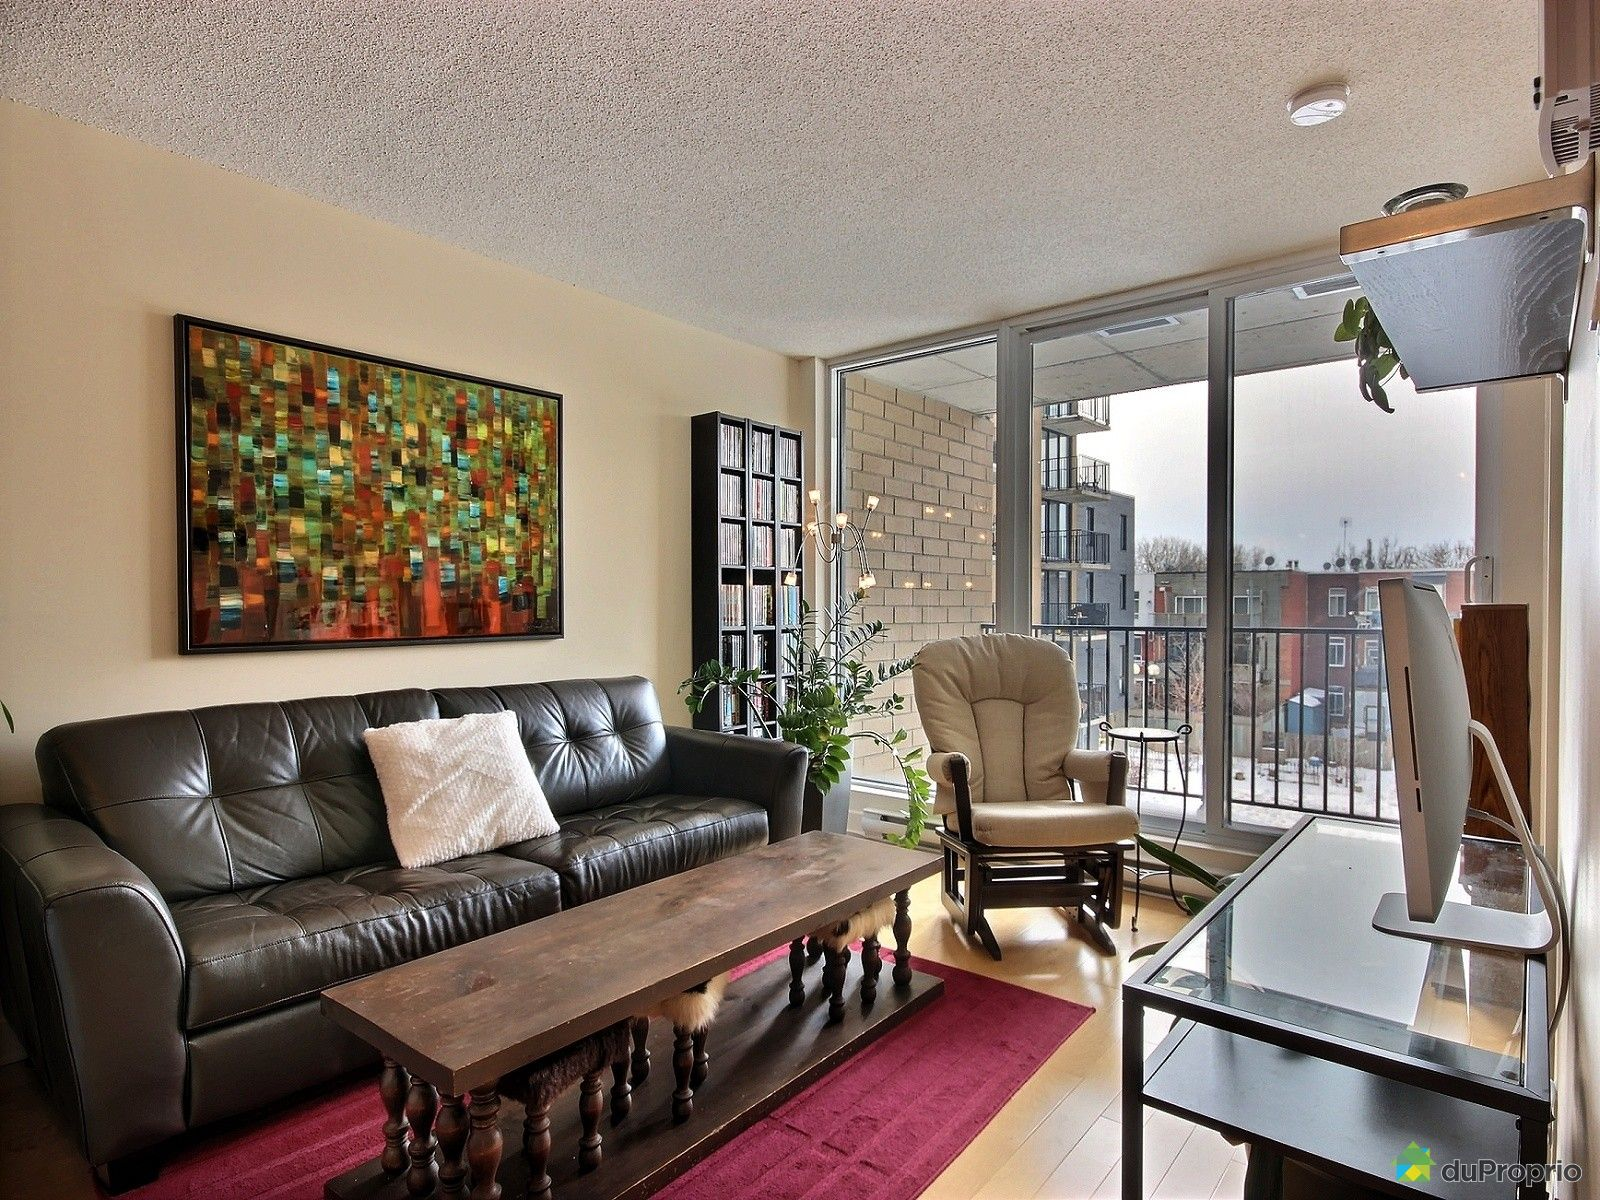 Condo for sale in Montreal 303 680 rue de Courcelle DuProprio  #8E3D53